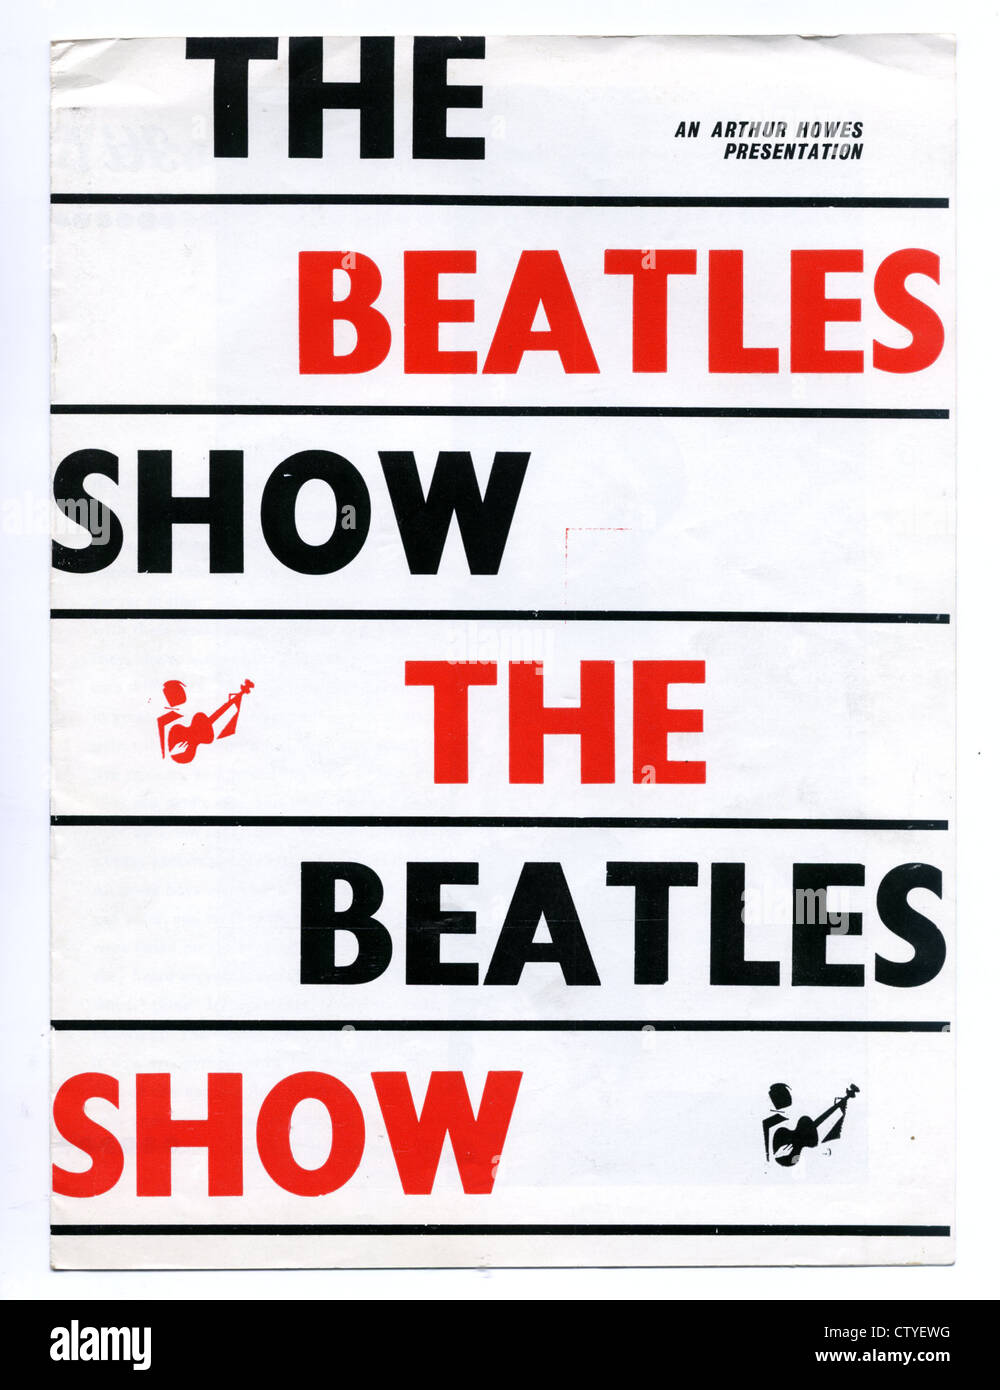 000857 - The Beatles Show Programme from Blackpool on 4th August 1963 - Stock Image